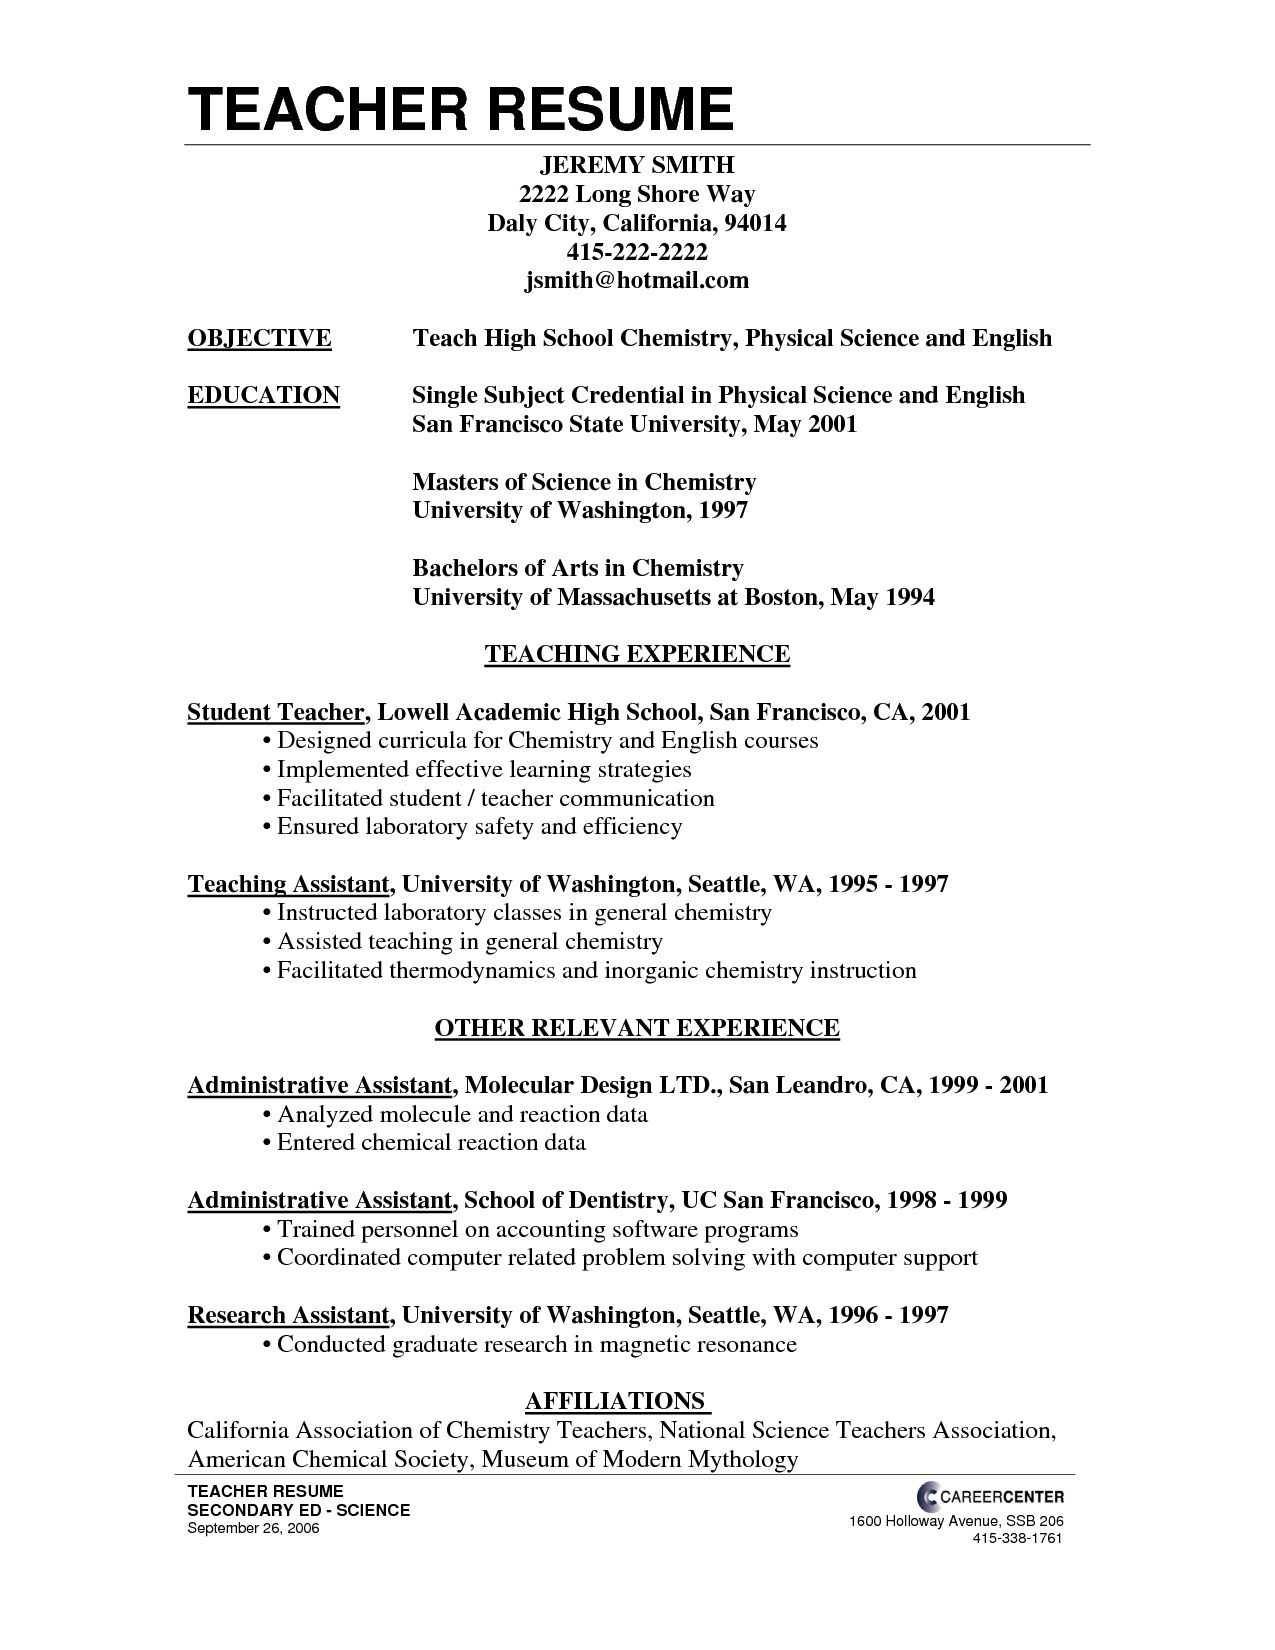 Resumes For Teachers High School Teacher Resume  Getha Krisha  Pinterest  Teacher